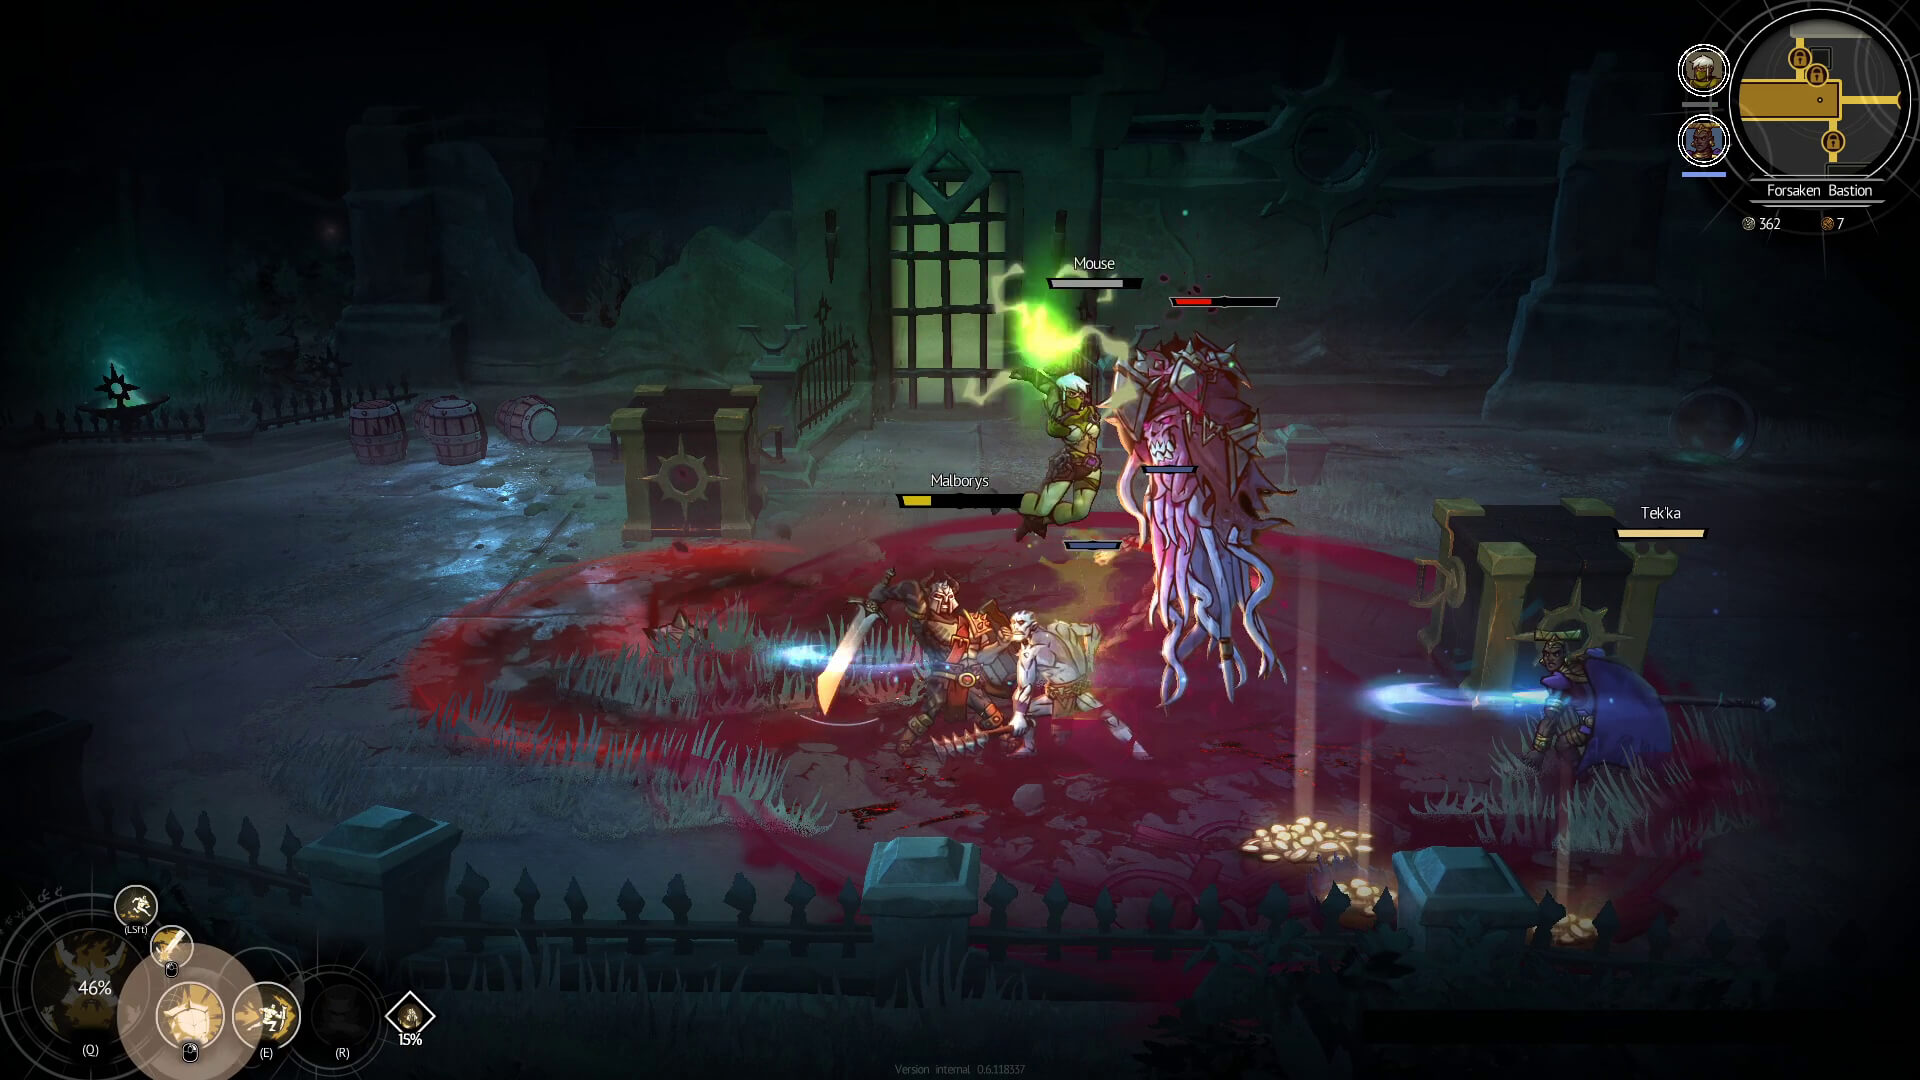 The heroes dance around puzzle boxes while fighting a boss.